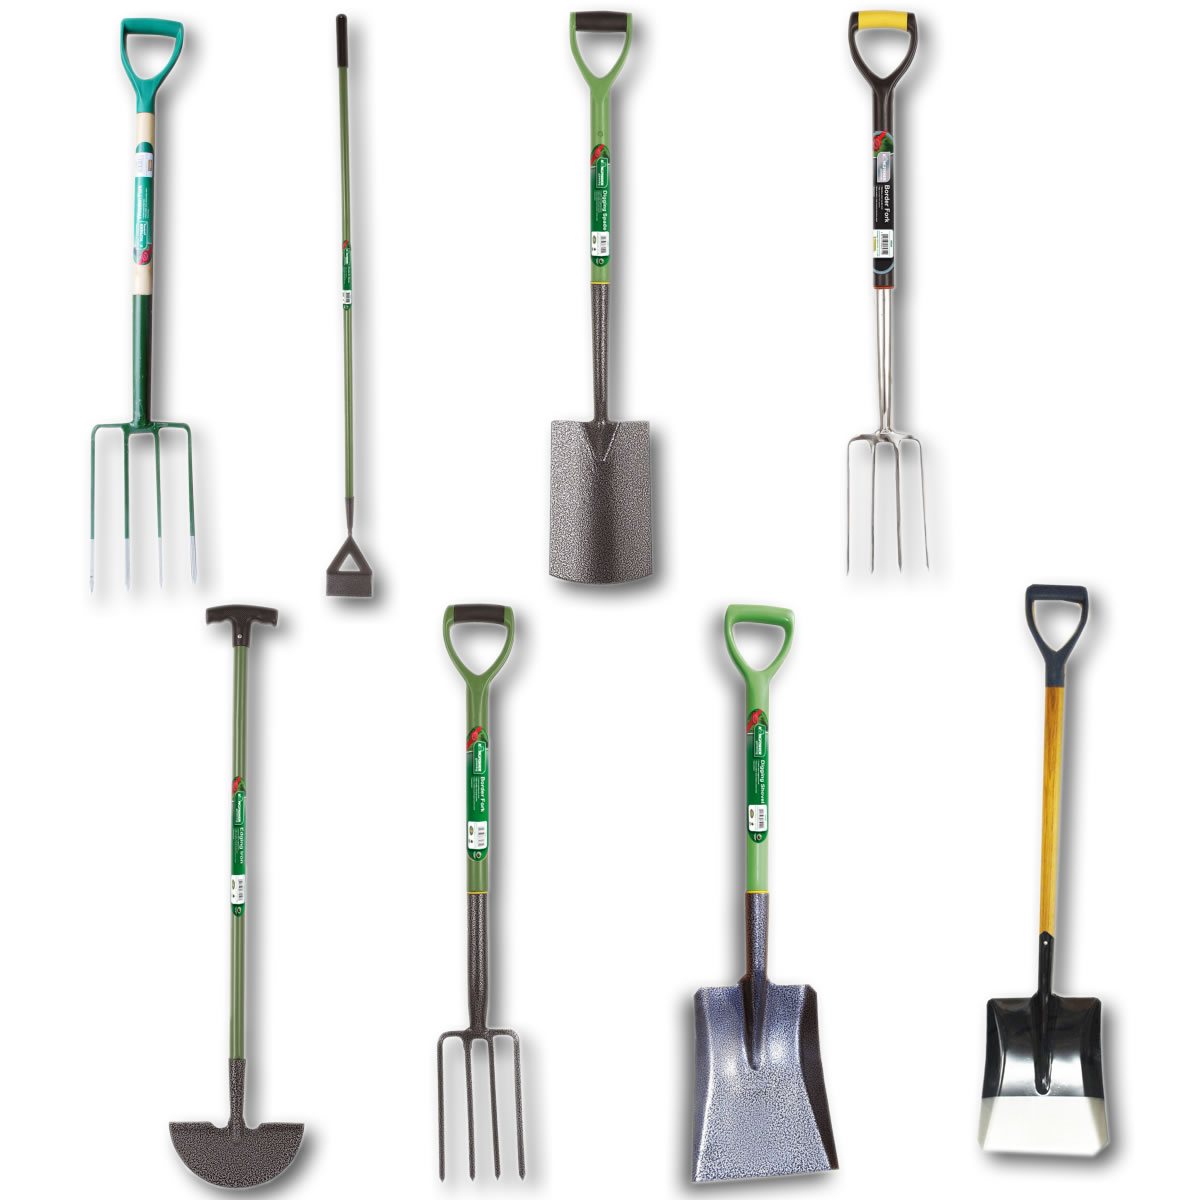 Garden Tools Kingfisher Garden Tools Forks Hoe Spade Edging Shovels